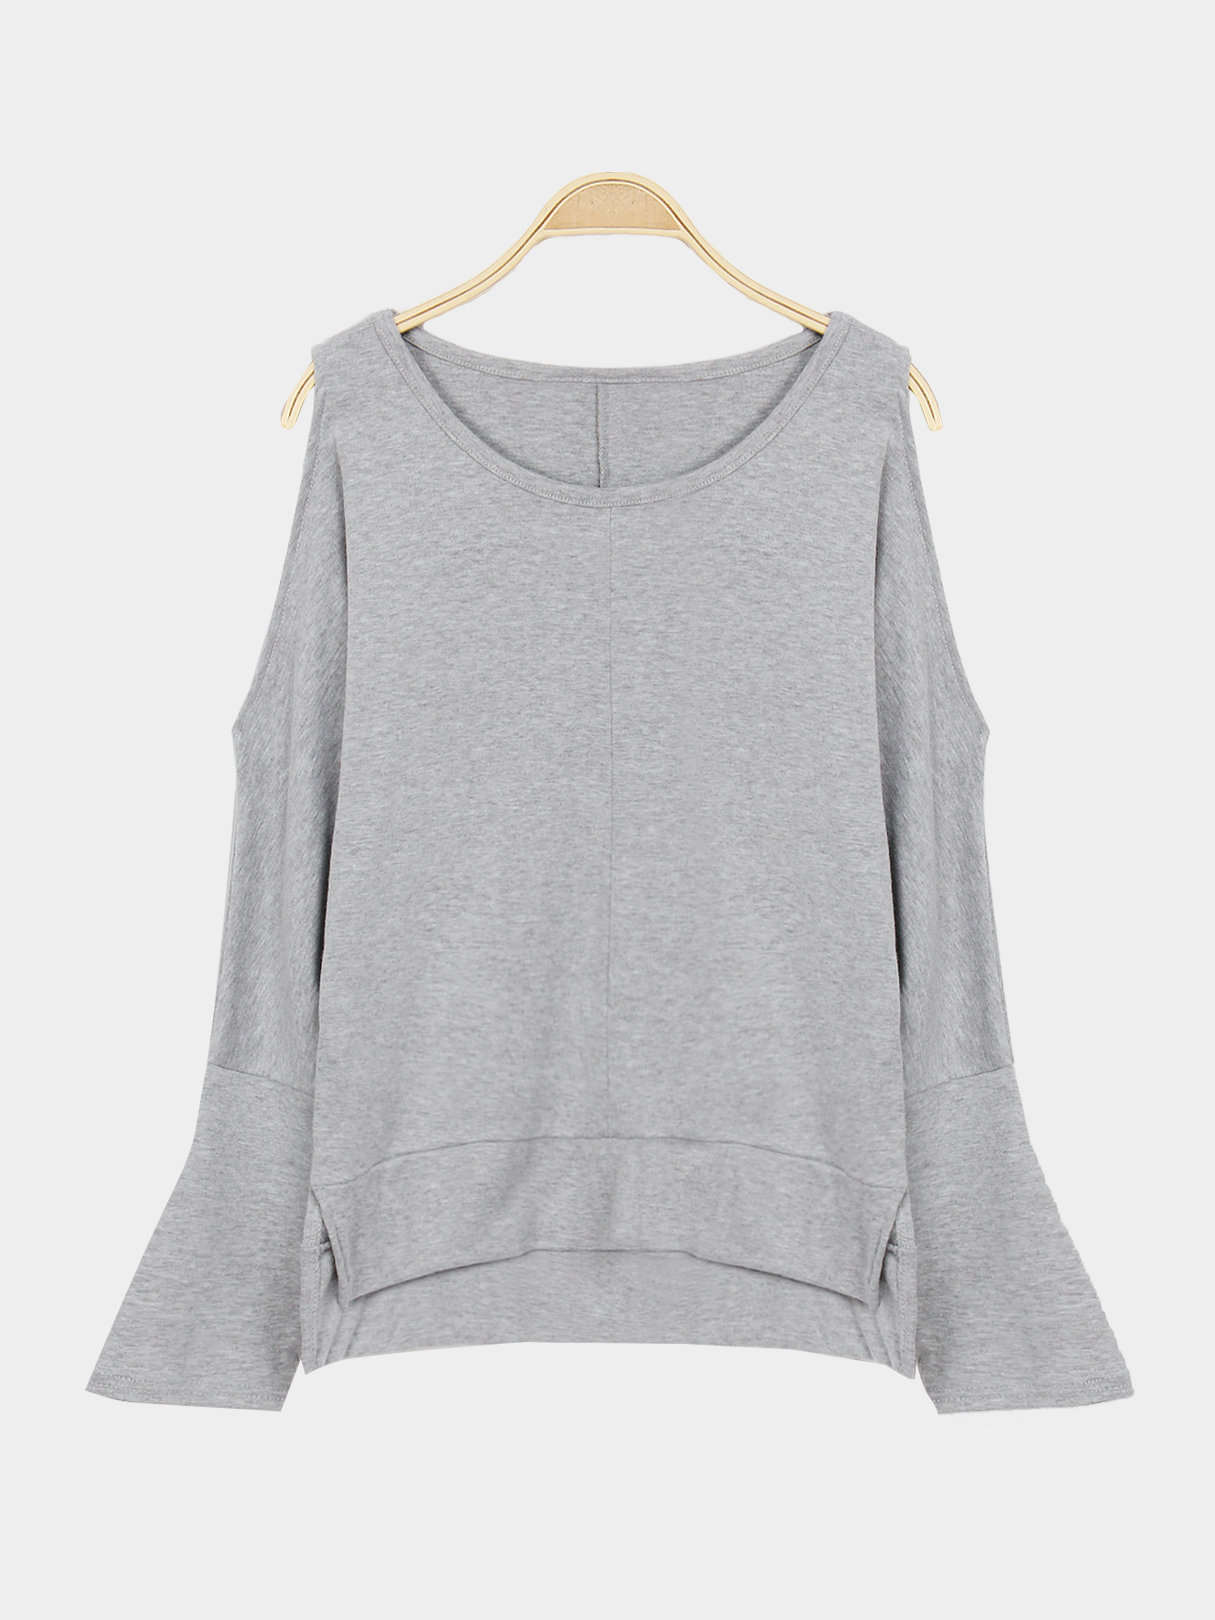 Grey Cold Shoulder Plain Color Blouse alexander mishkin how to stay young it